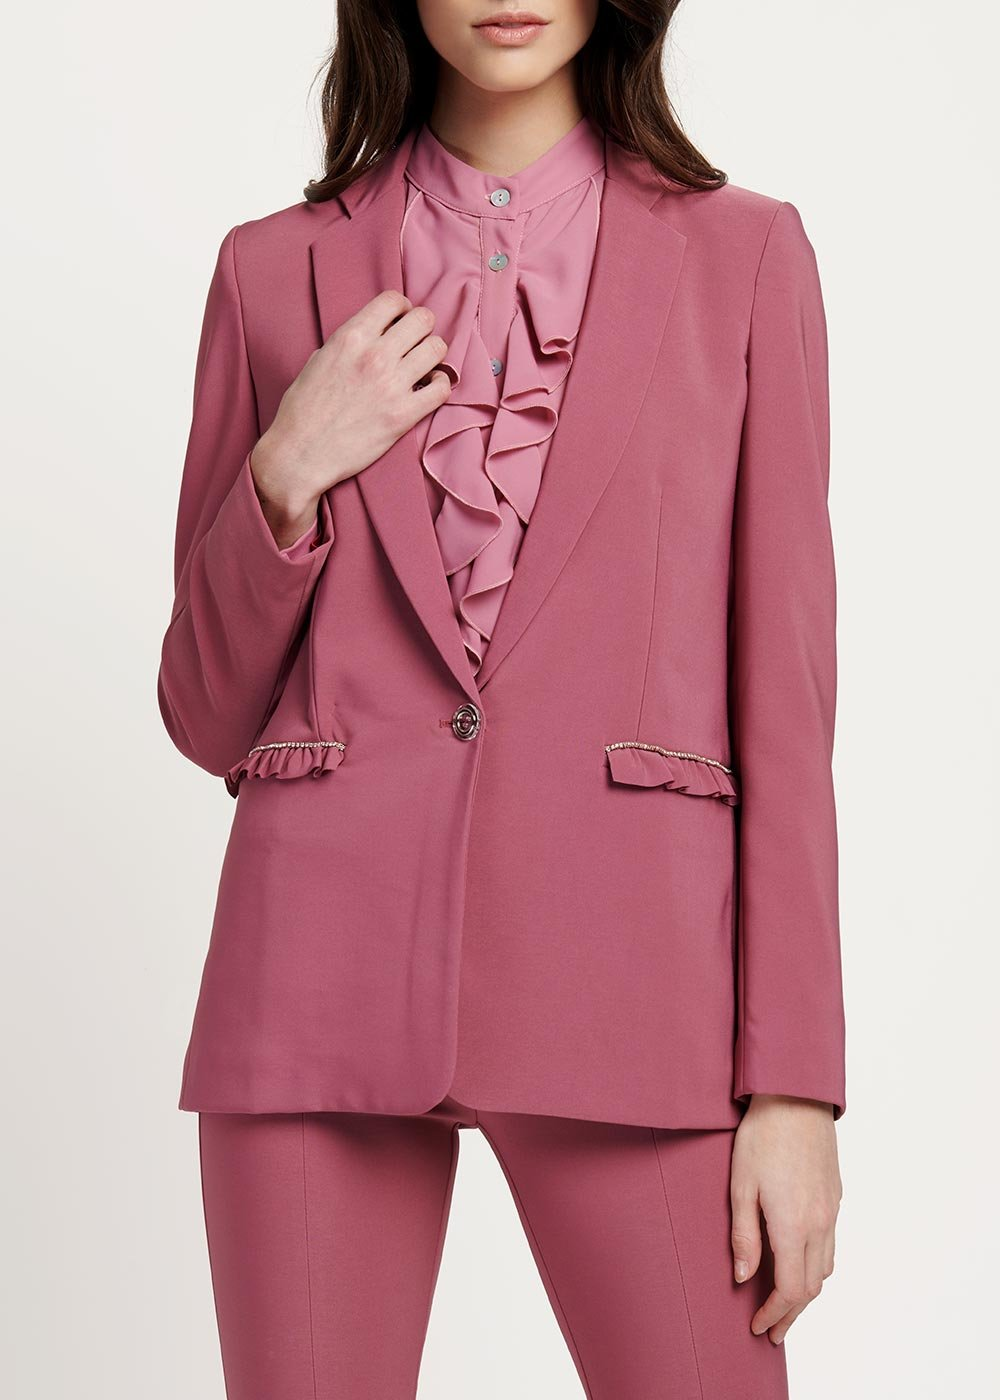 Giacca Germana con rever e rouches - Candy - Donna